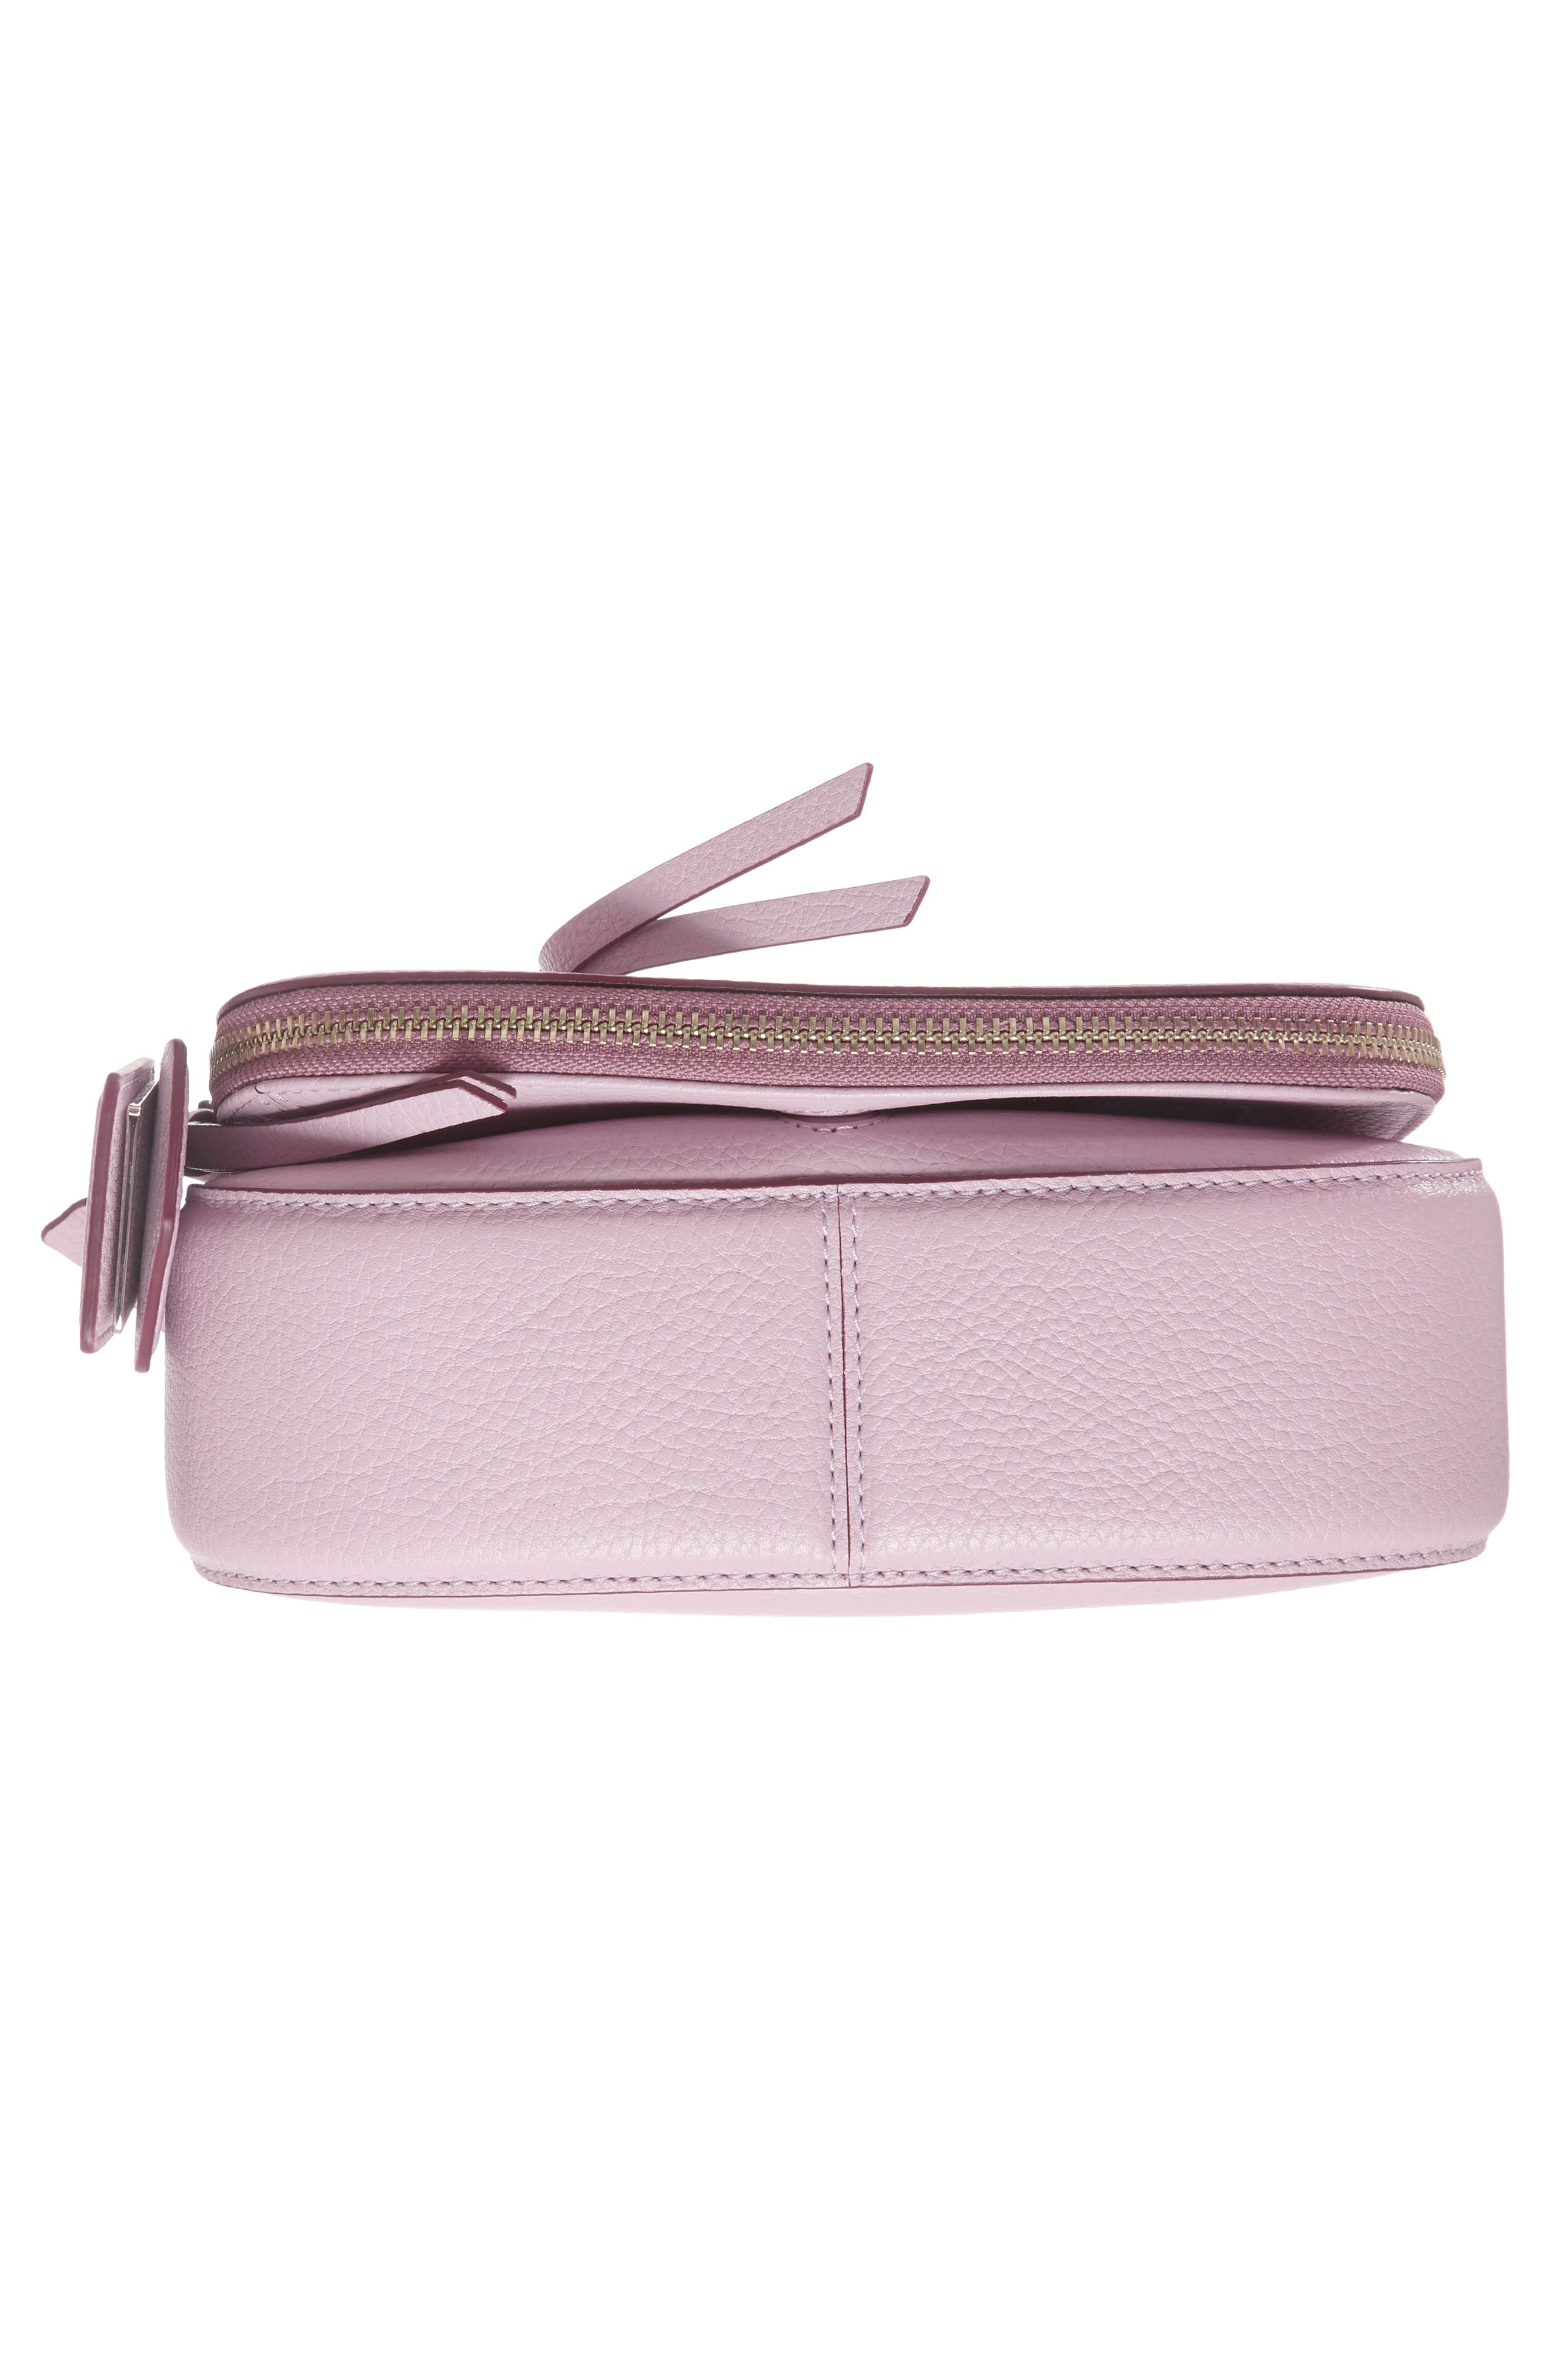 Small Recruit Nomad Pebbled Leather Crossbody Bag,                             Alternate thumbnail 77, color,